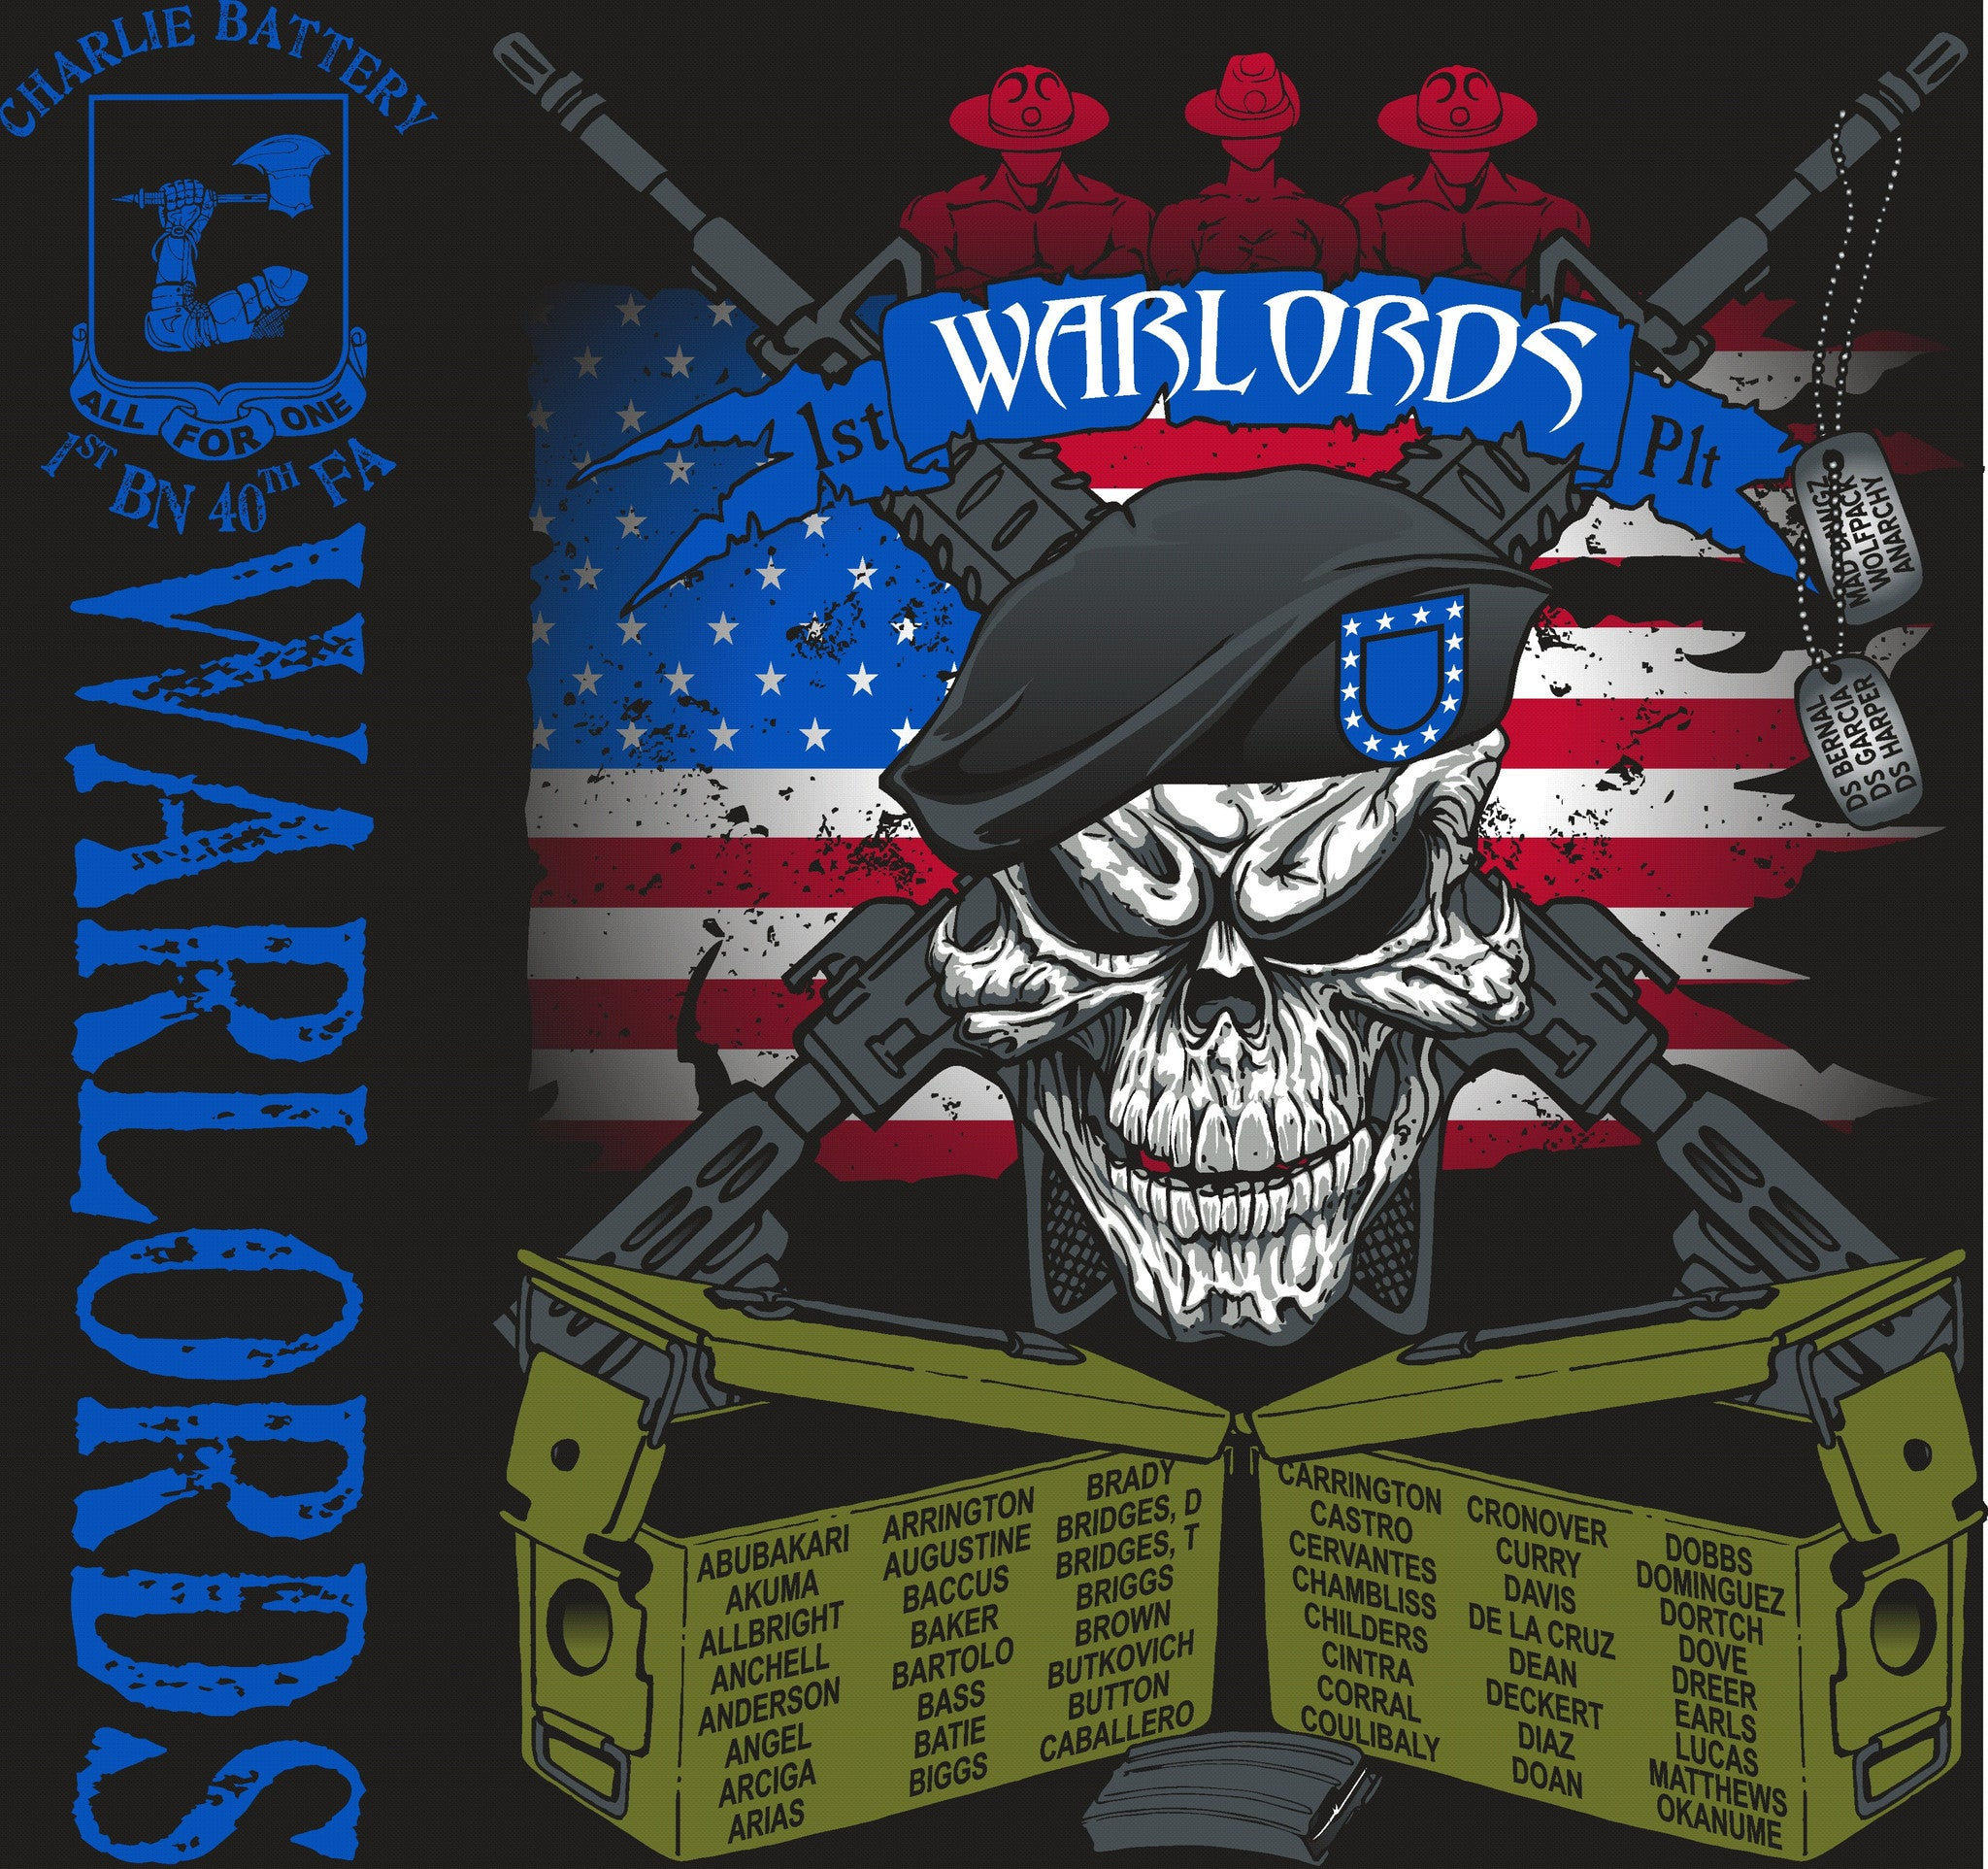 Platoon Shirts CHARLIE 1st 40th WARLORDS OCT 2015